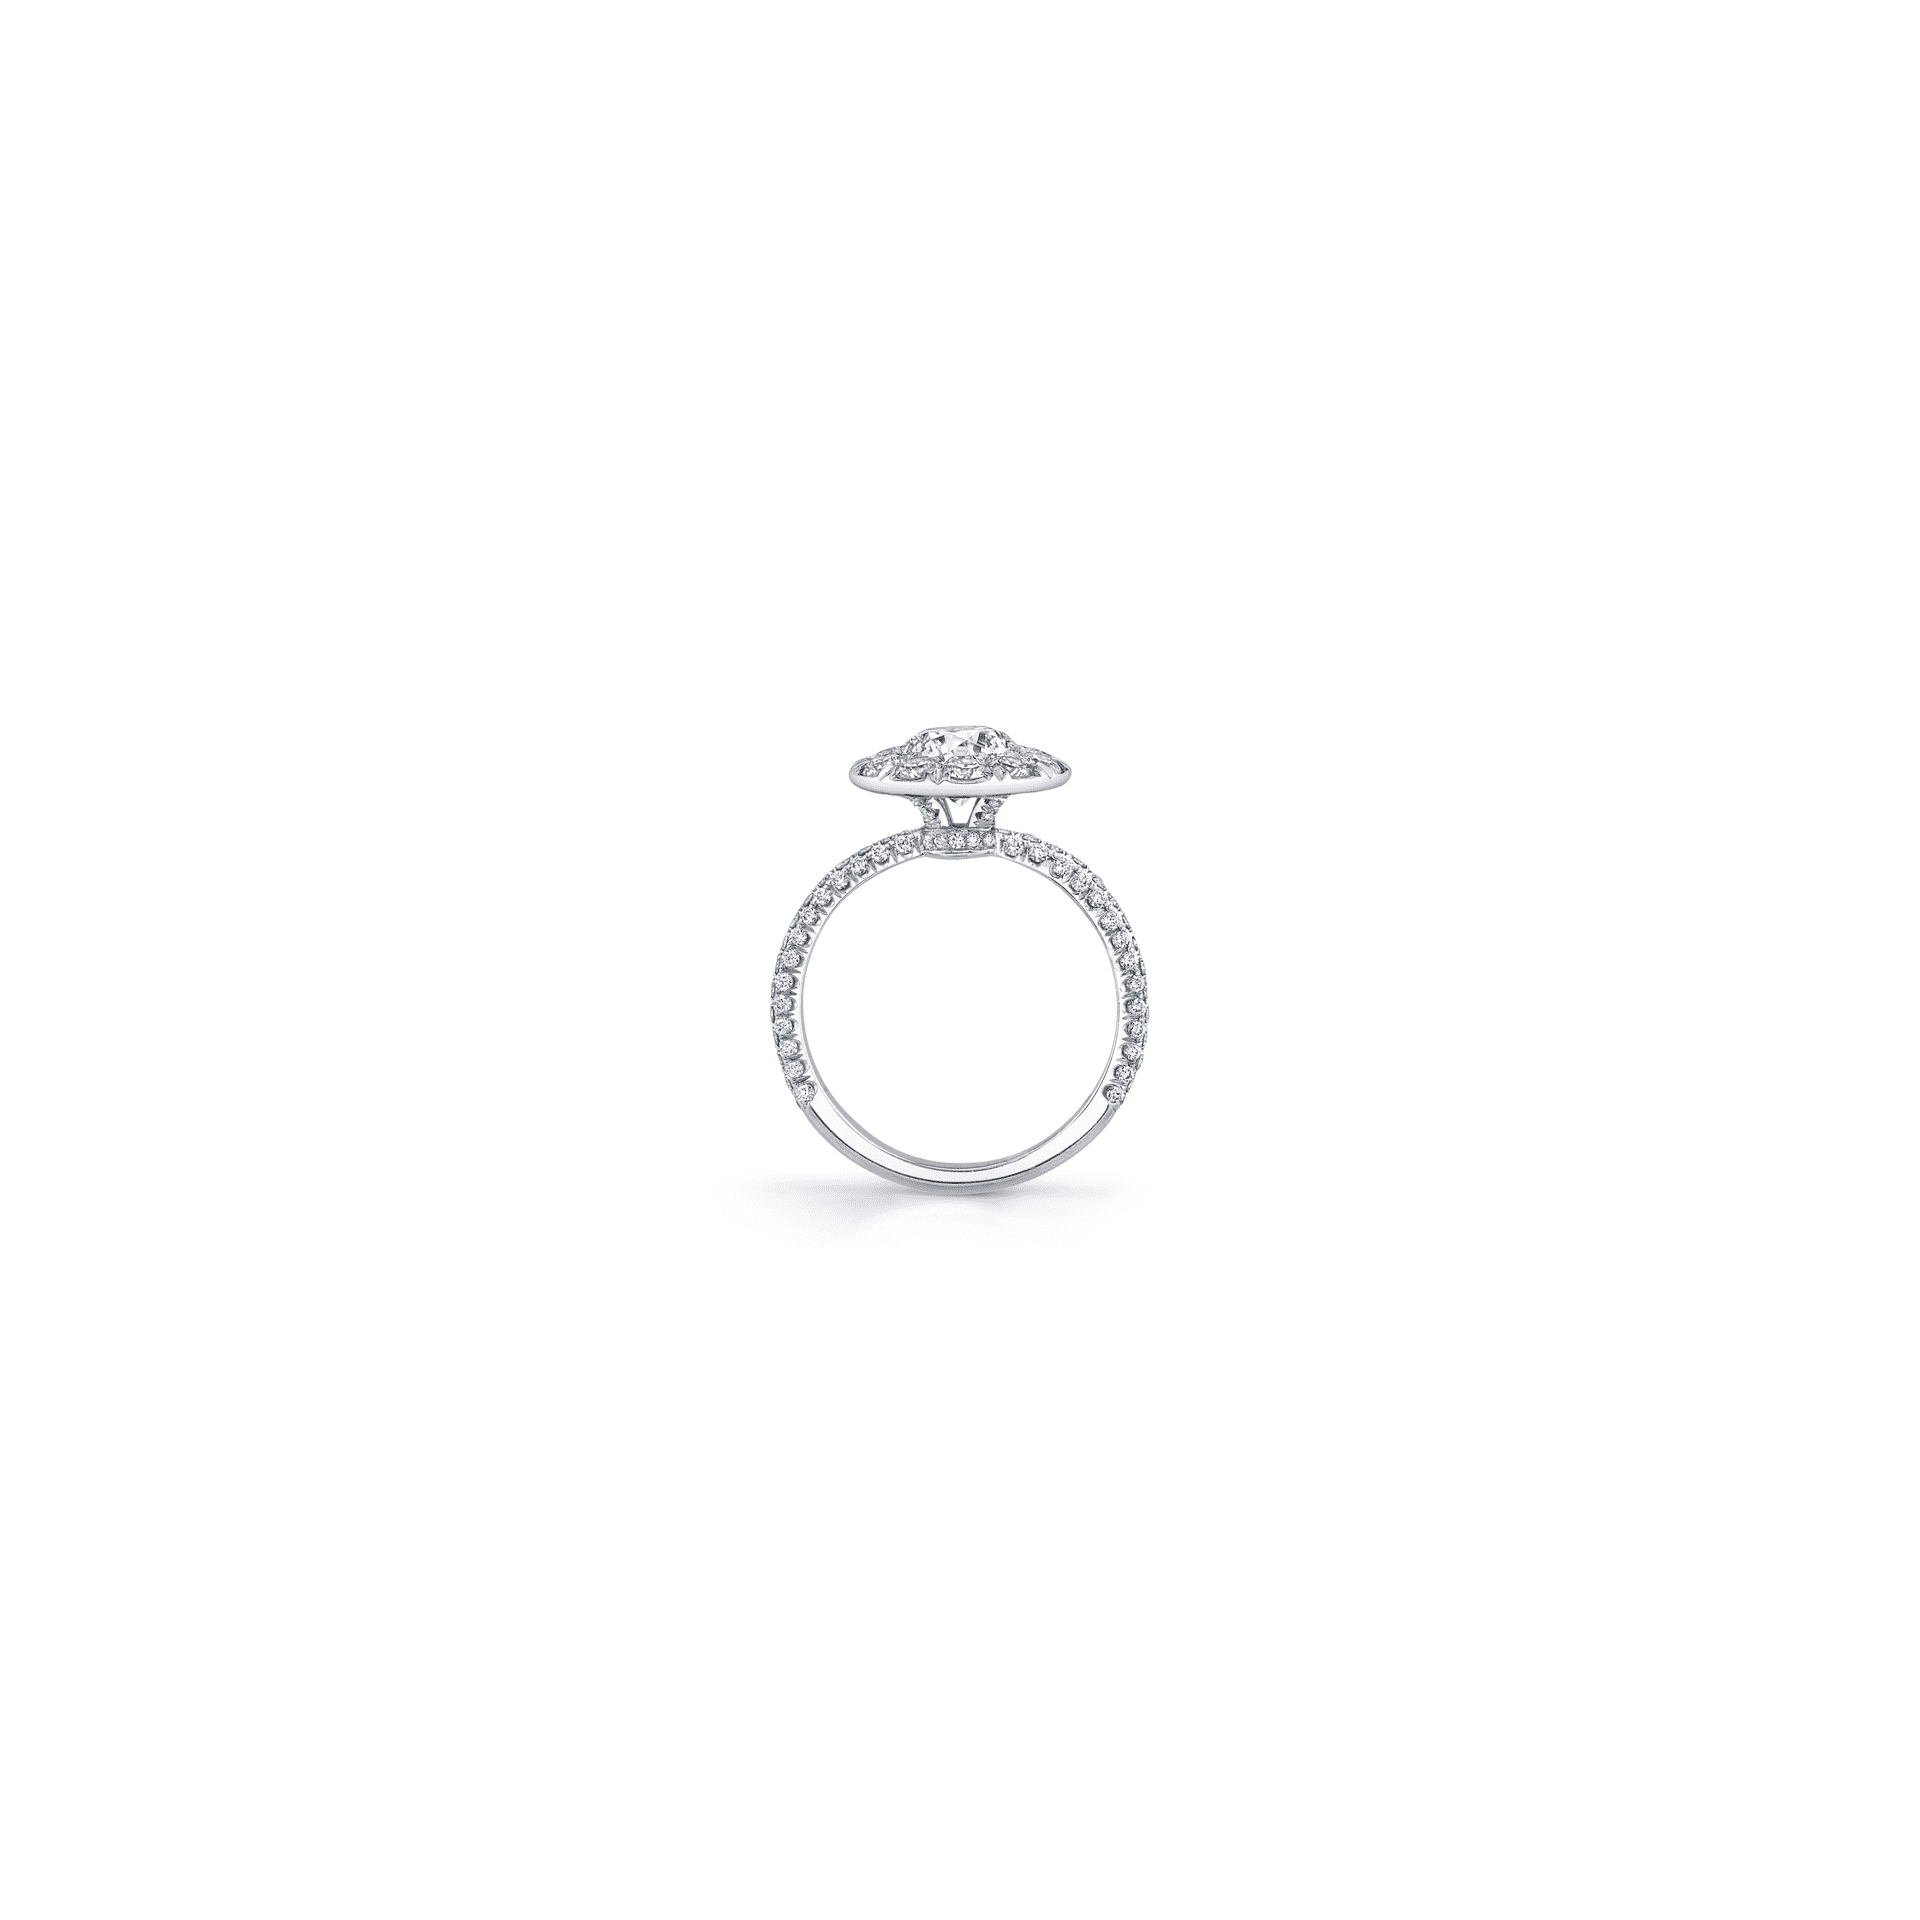 Jacqueline Floating Round Brilliant Seamless Solitaire® Engagement Ring with diamond pavé in 18k White Gold Standing View by Oui by Jean Dousset